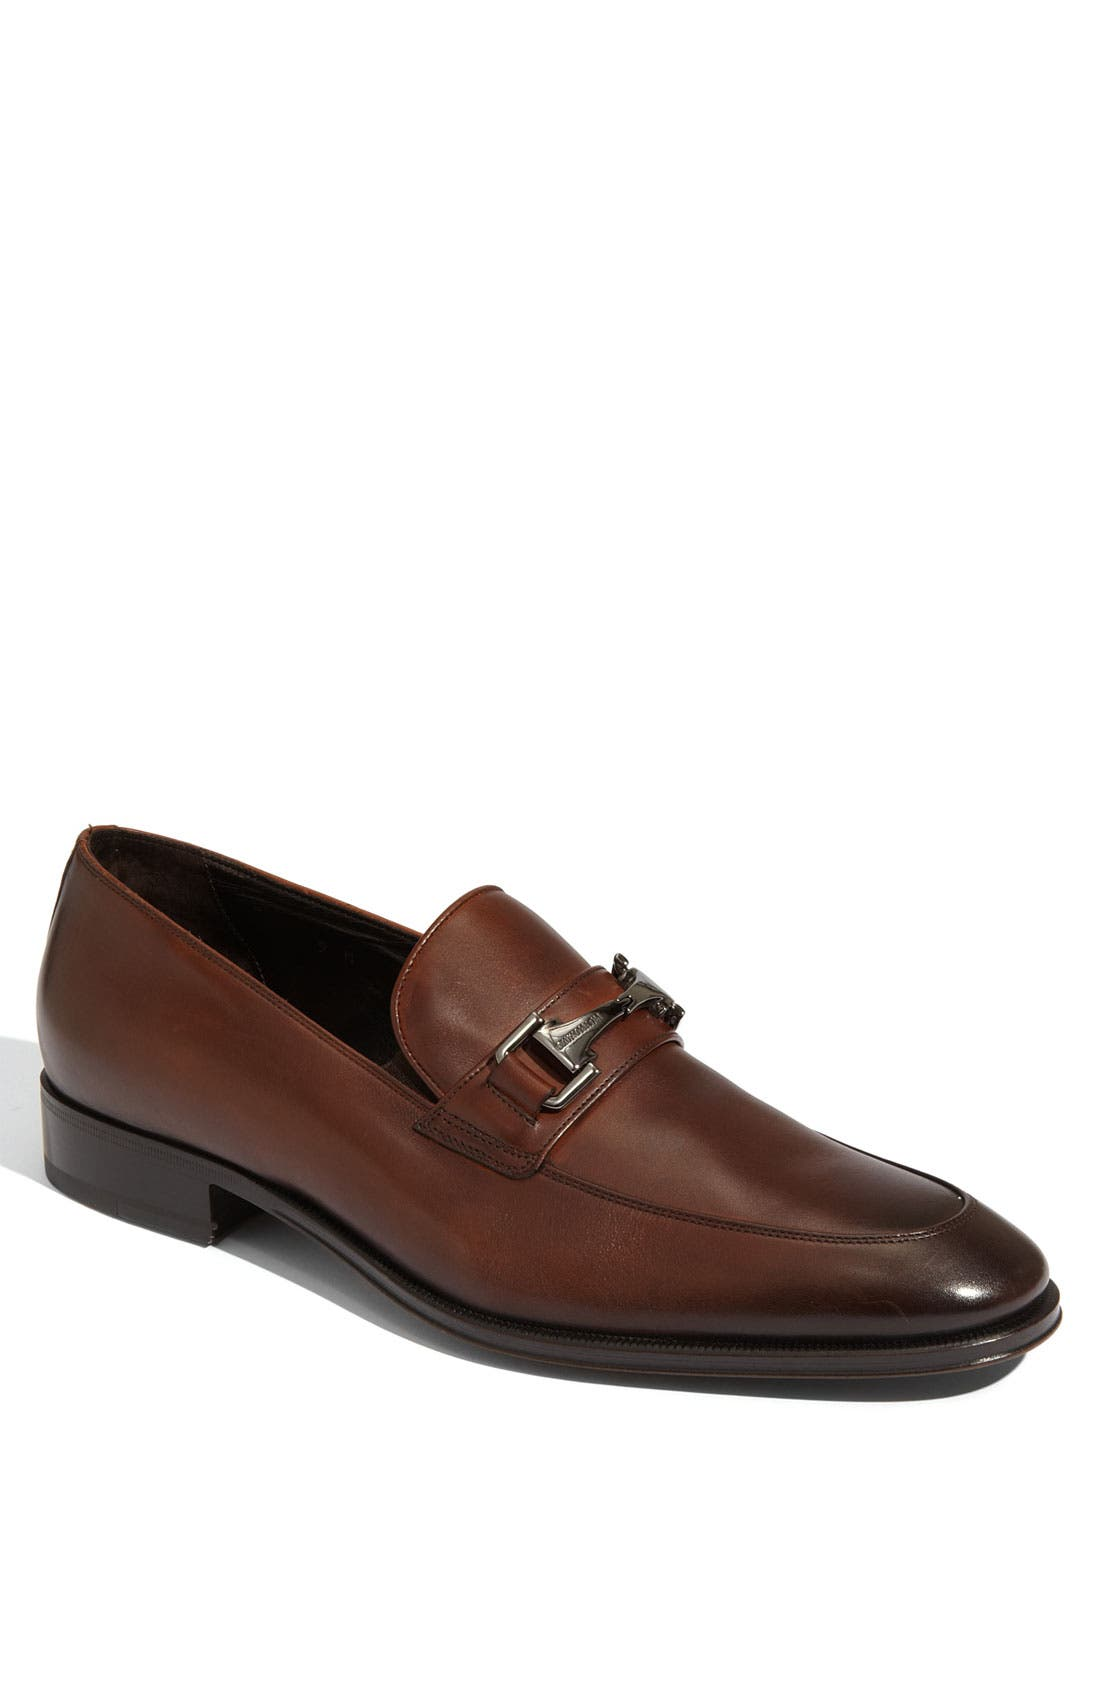 Alternate Image 1 Selected - Bruno Magli 'Rigen' Loafer